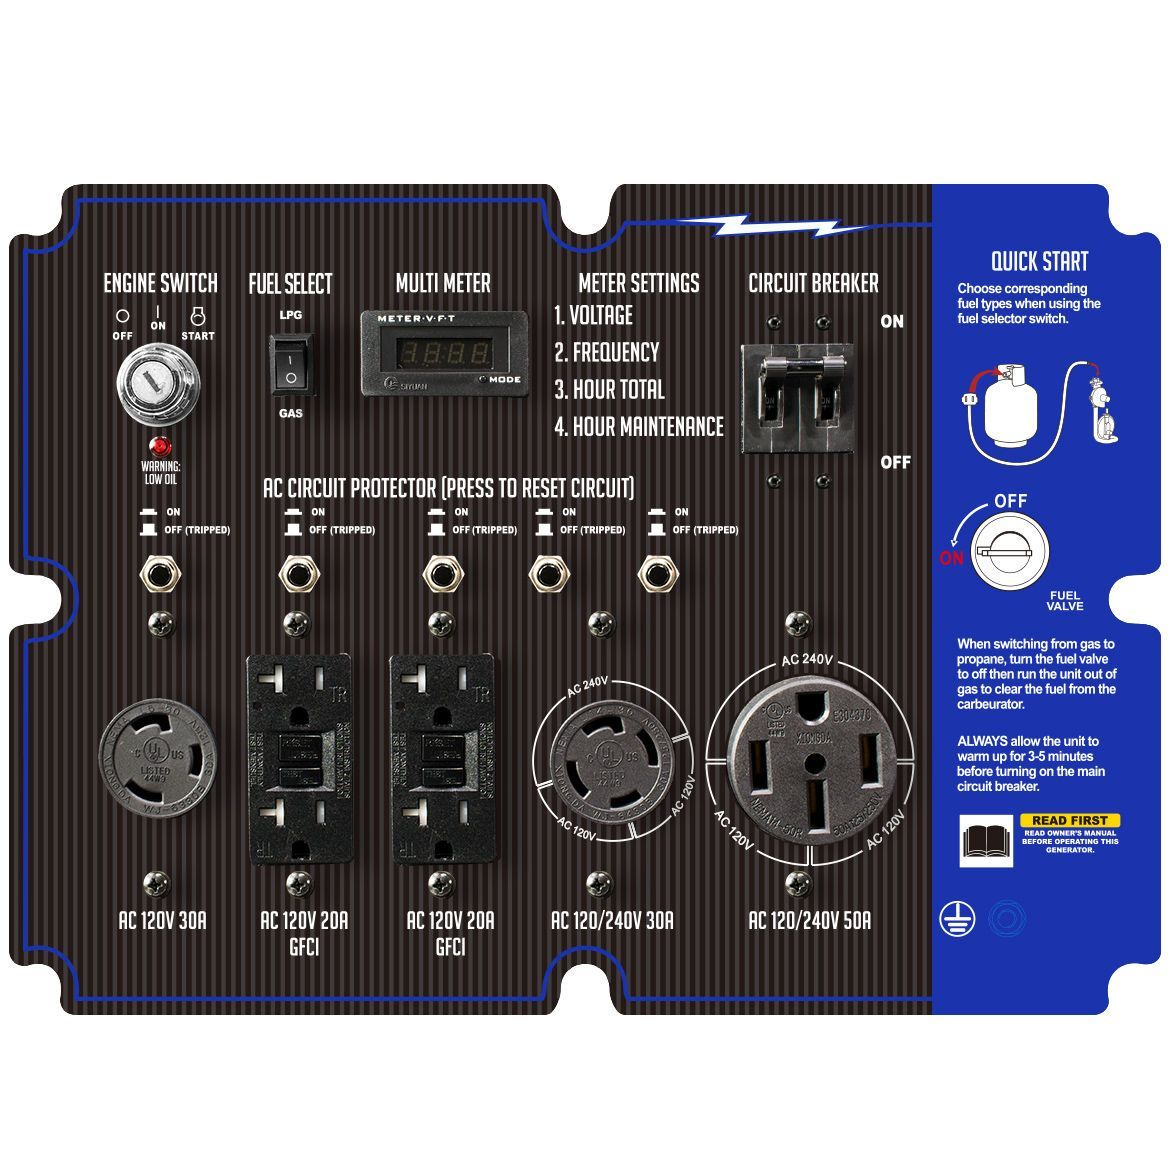 Skytec Dj Mixers Sound Vision Ebay Products Pinterest Circuit Breaker Gfci Qo 1p 30a And